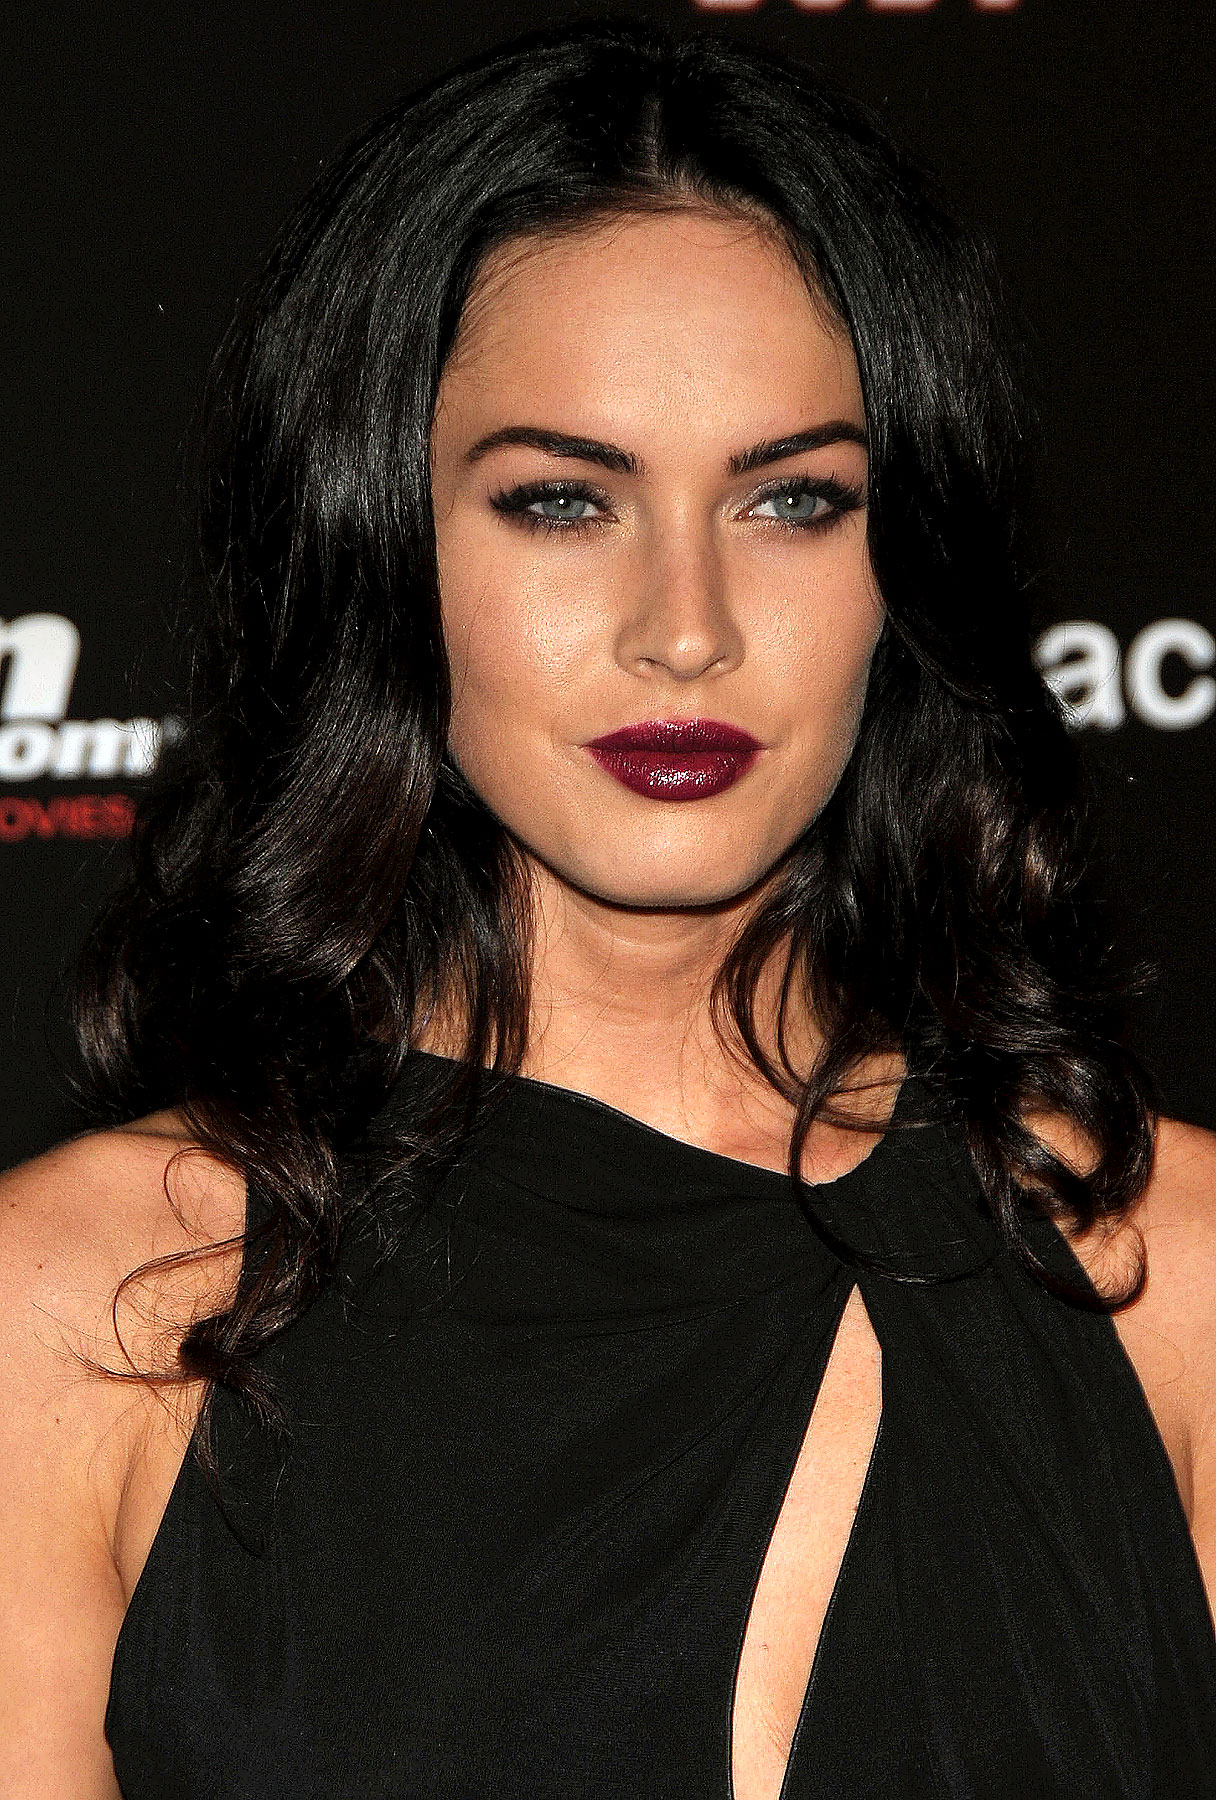 Megan Fox Is Getting Dumped For a Day